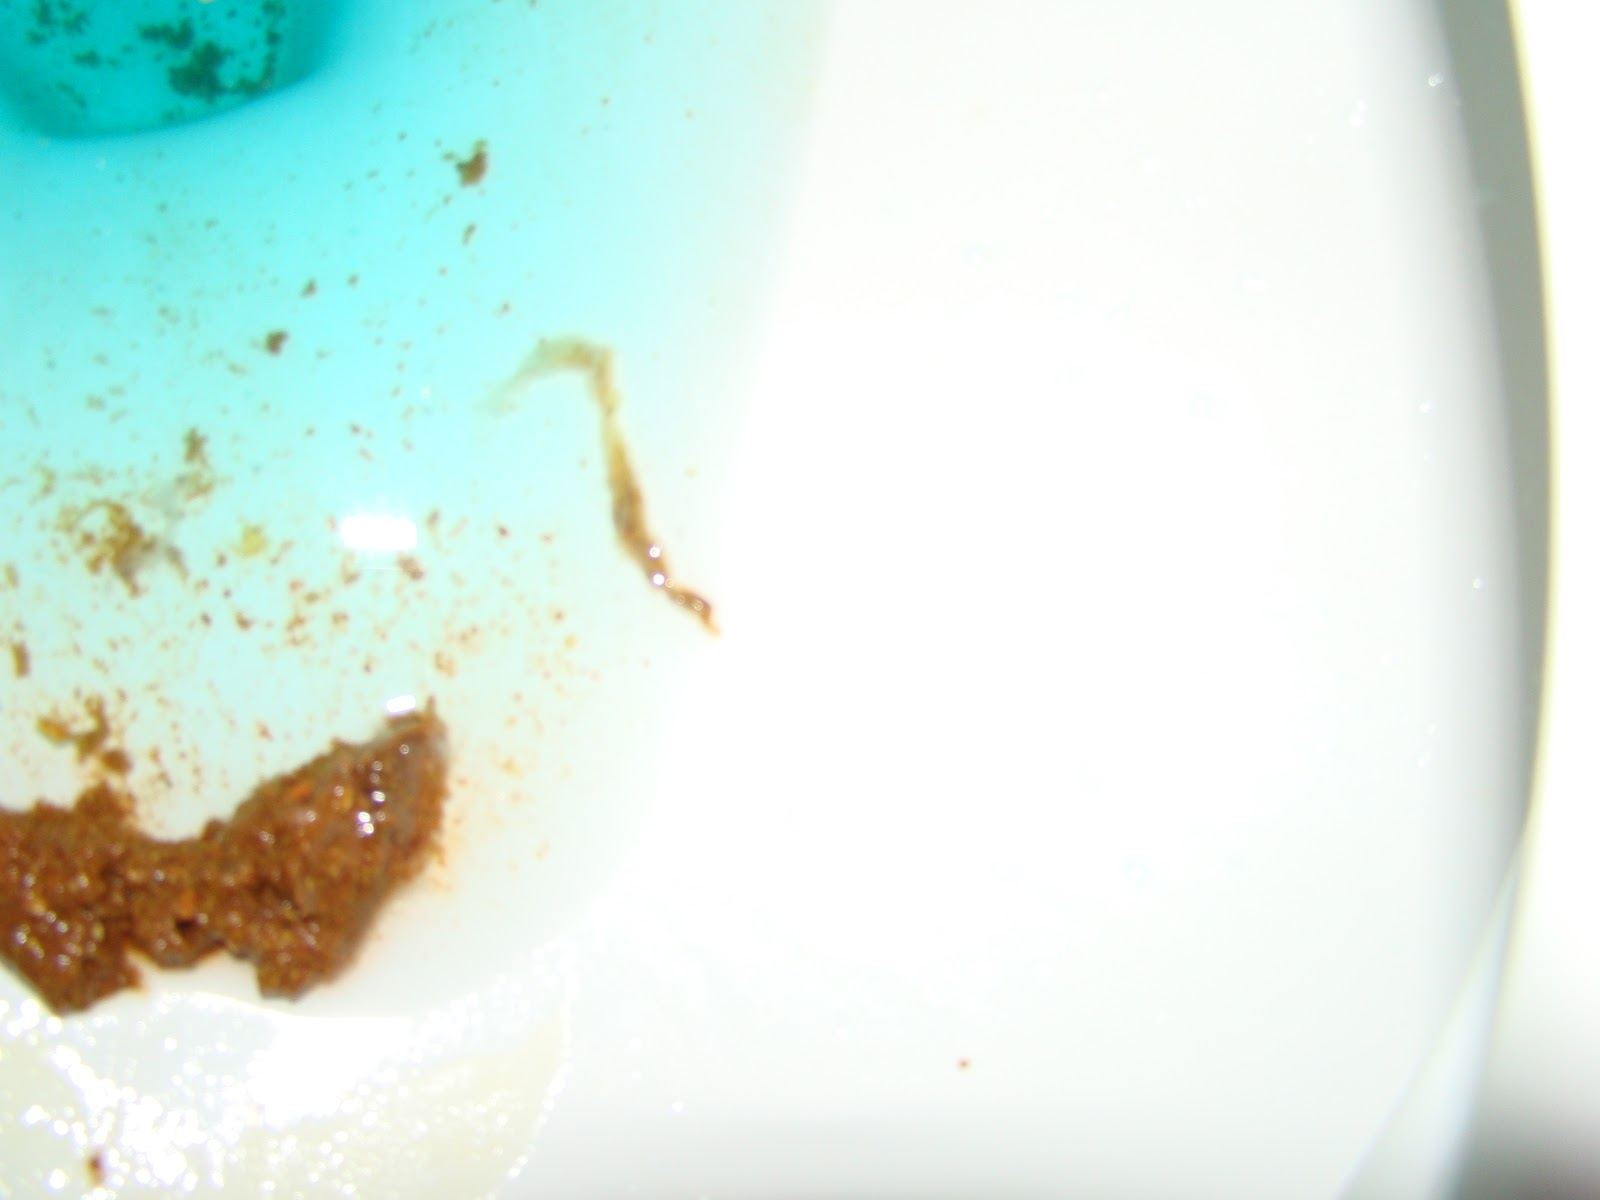 Human Poop With Tapeworm